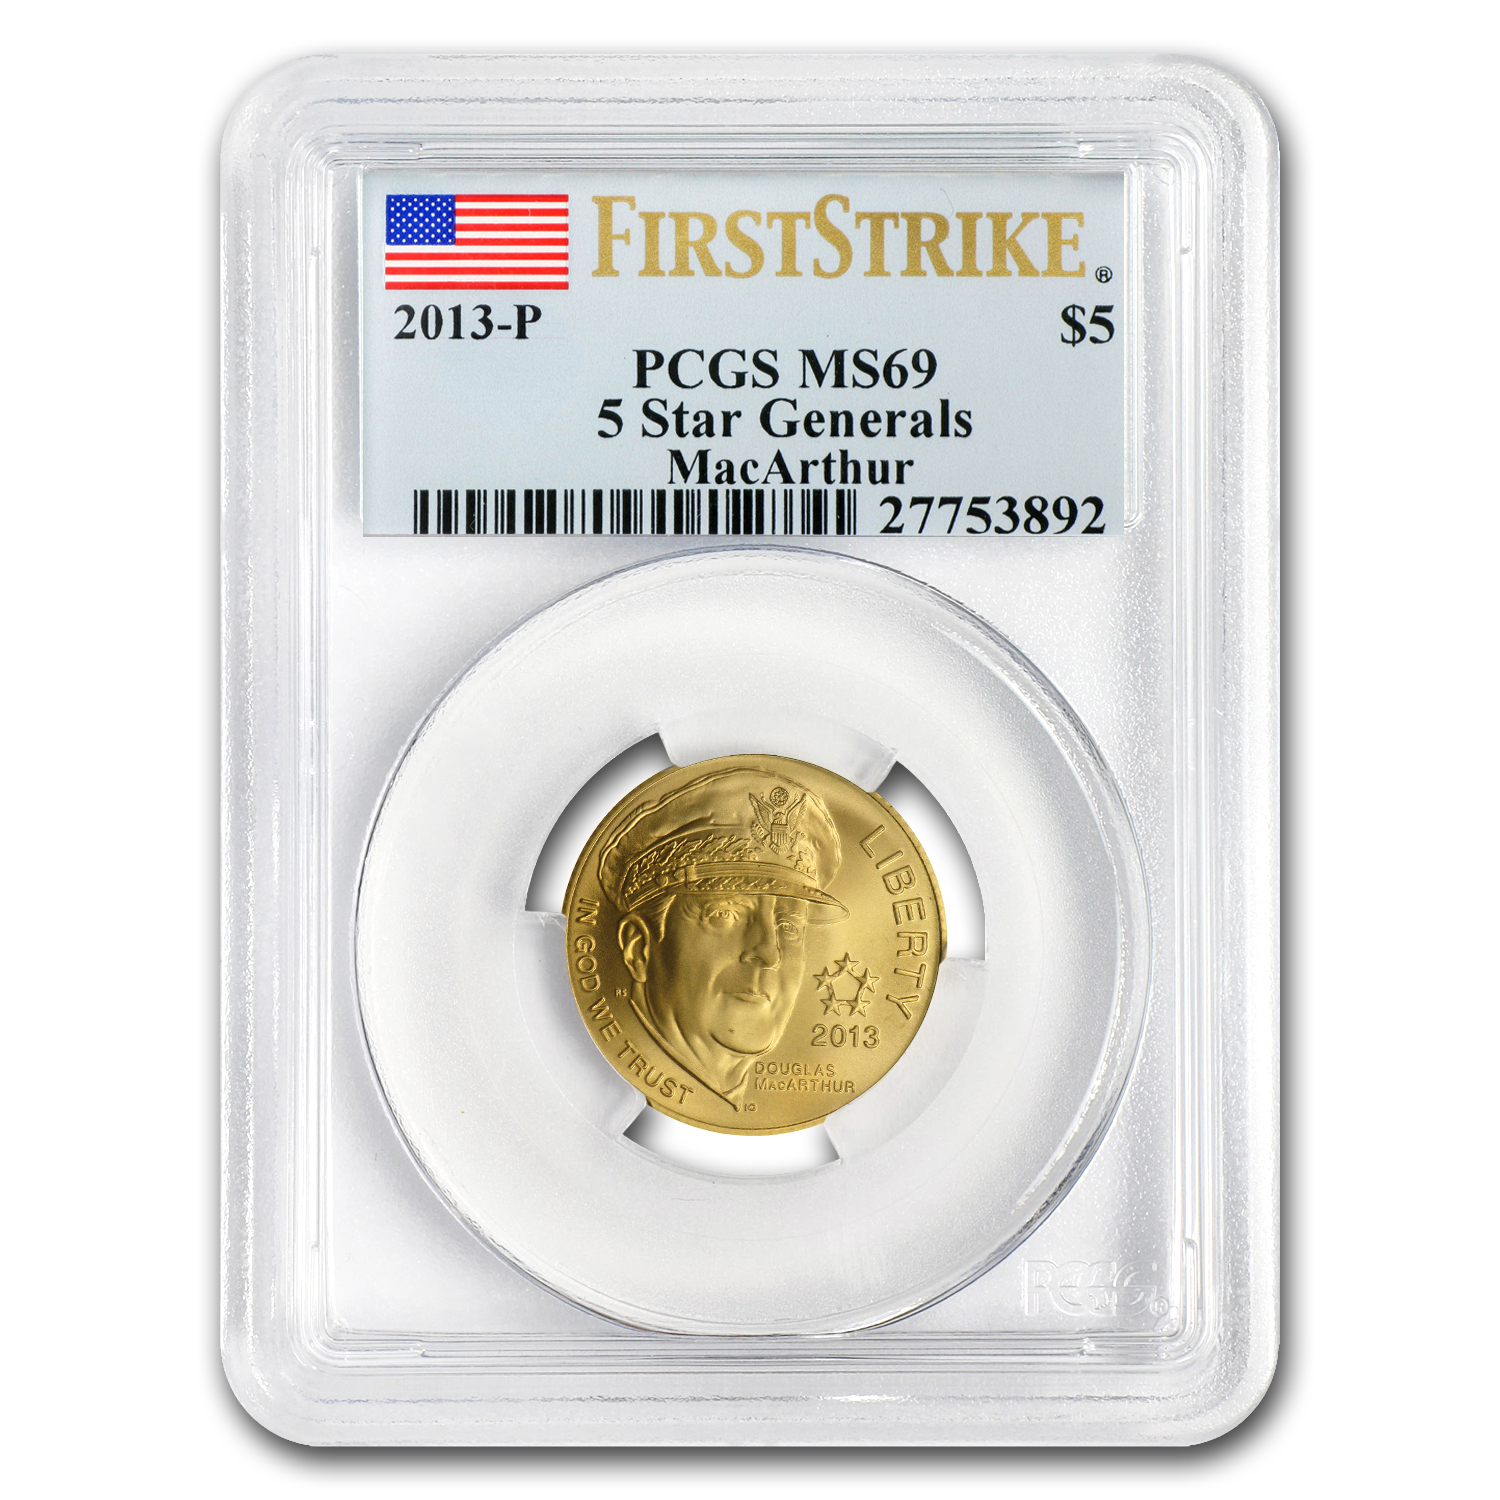 2013-P Five Star General - $5 Gold Commem - MS-69 PCGS (FS)